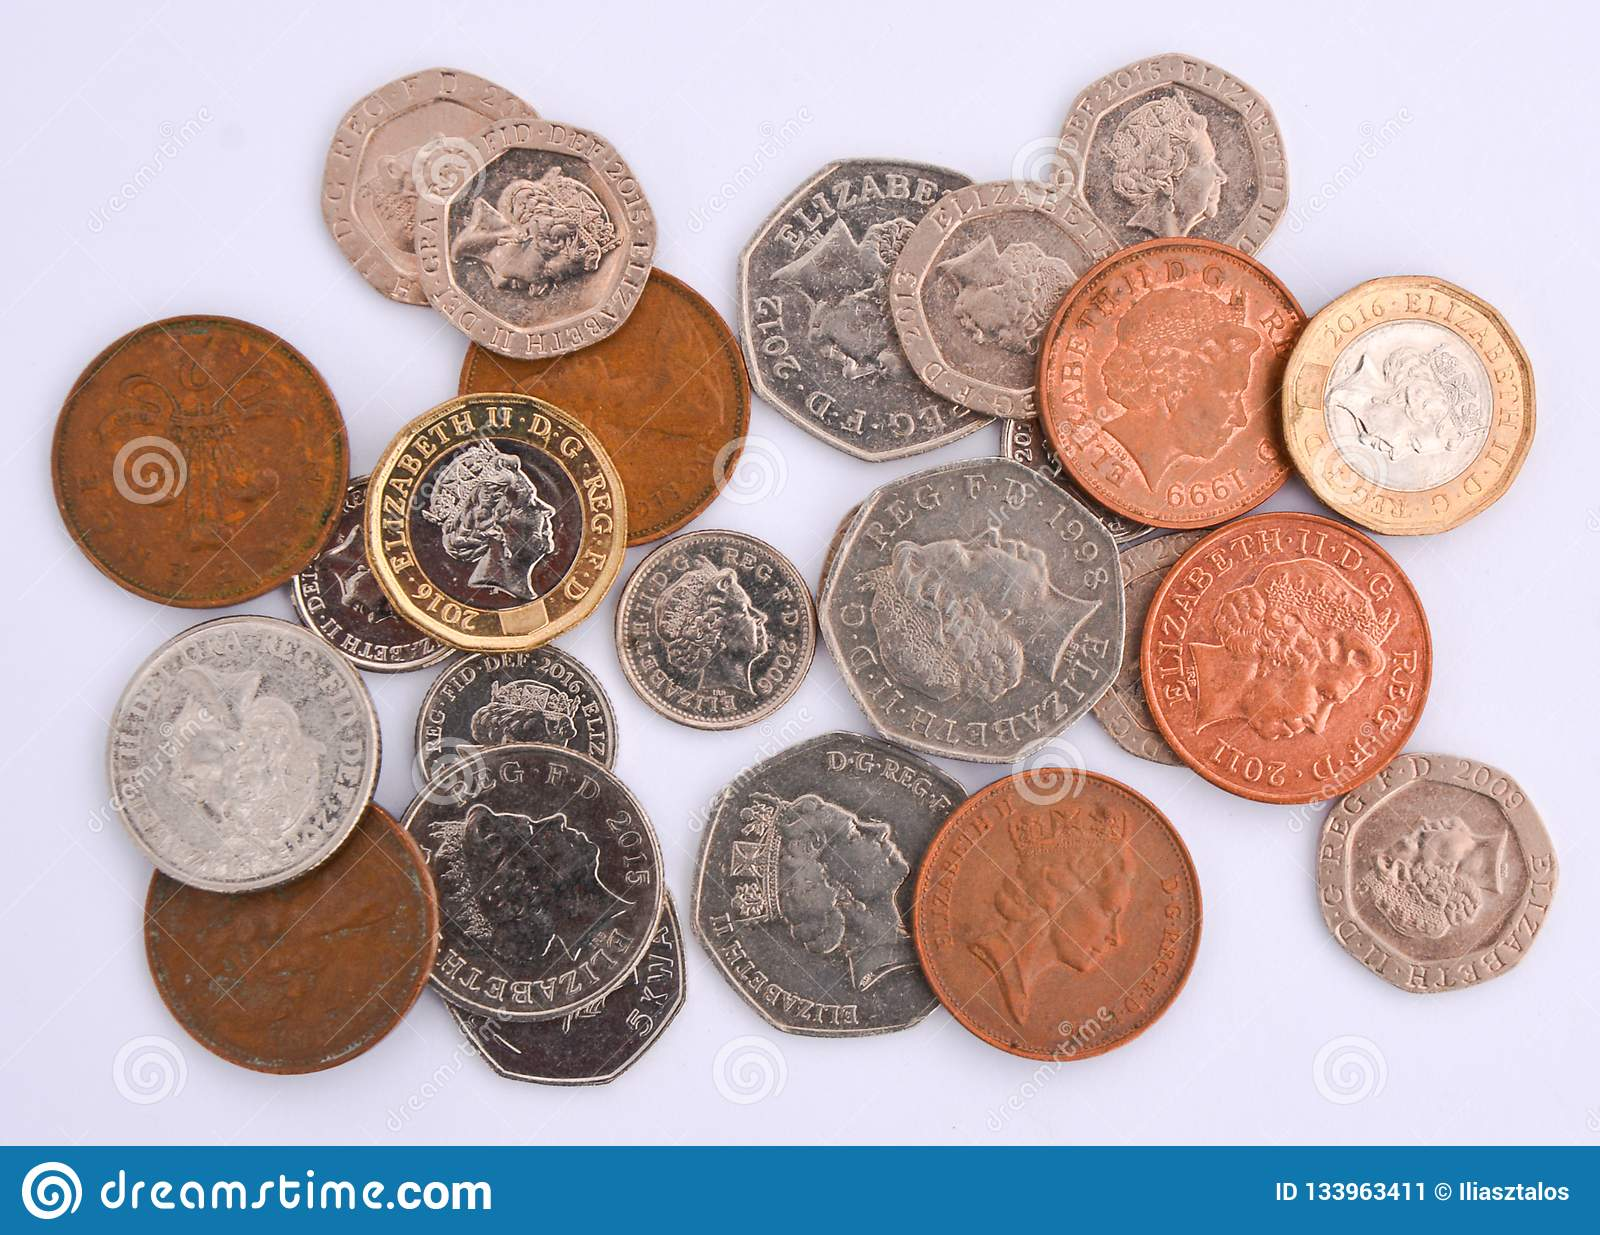 British Coins On White Background Stock Image - Image of gold, money